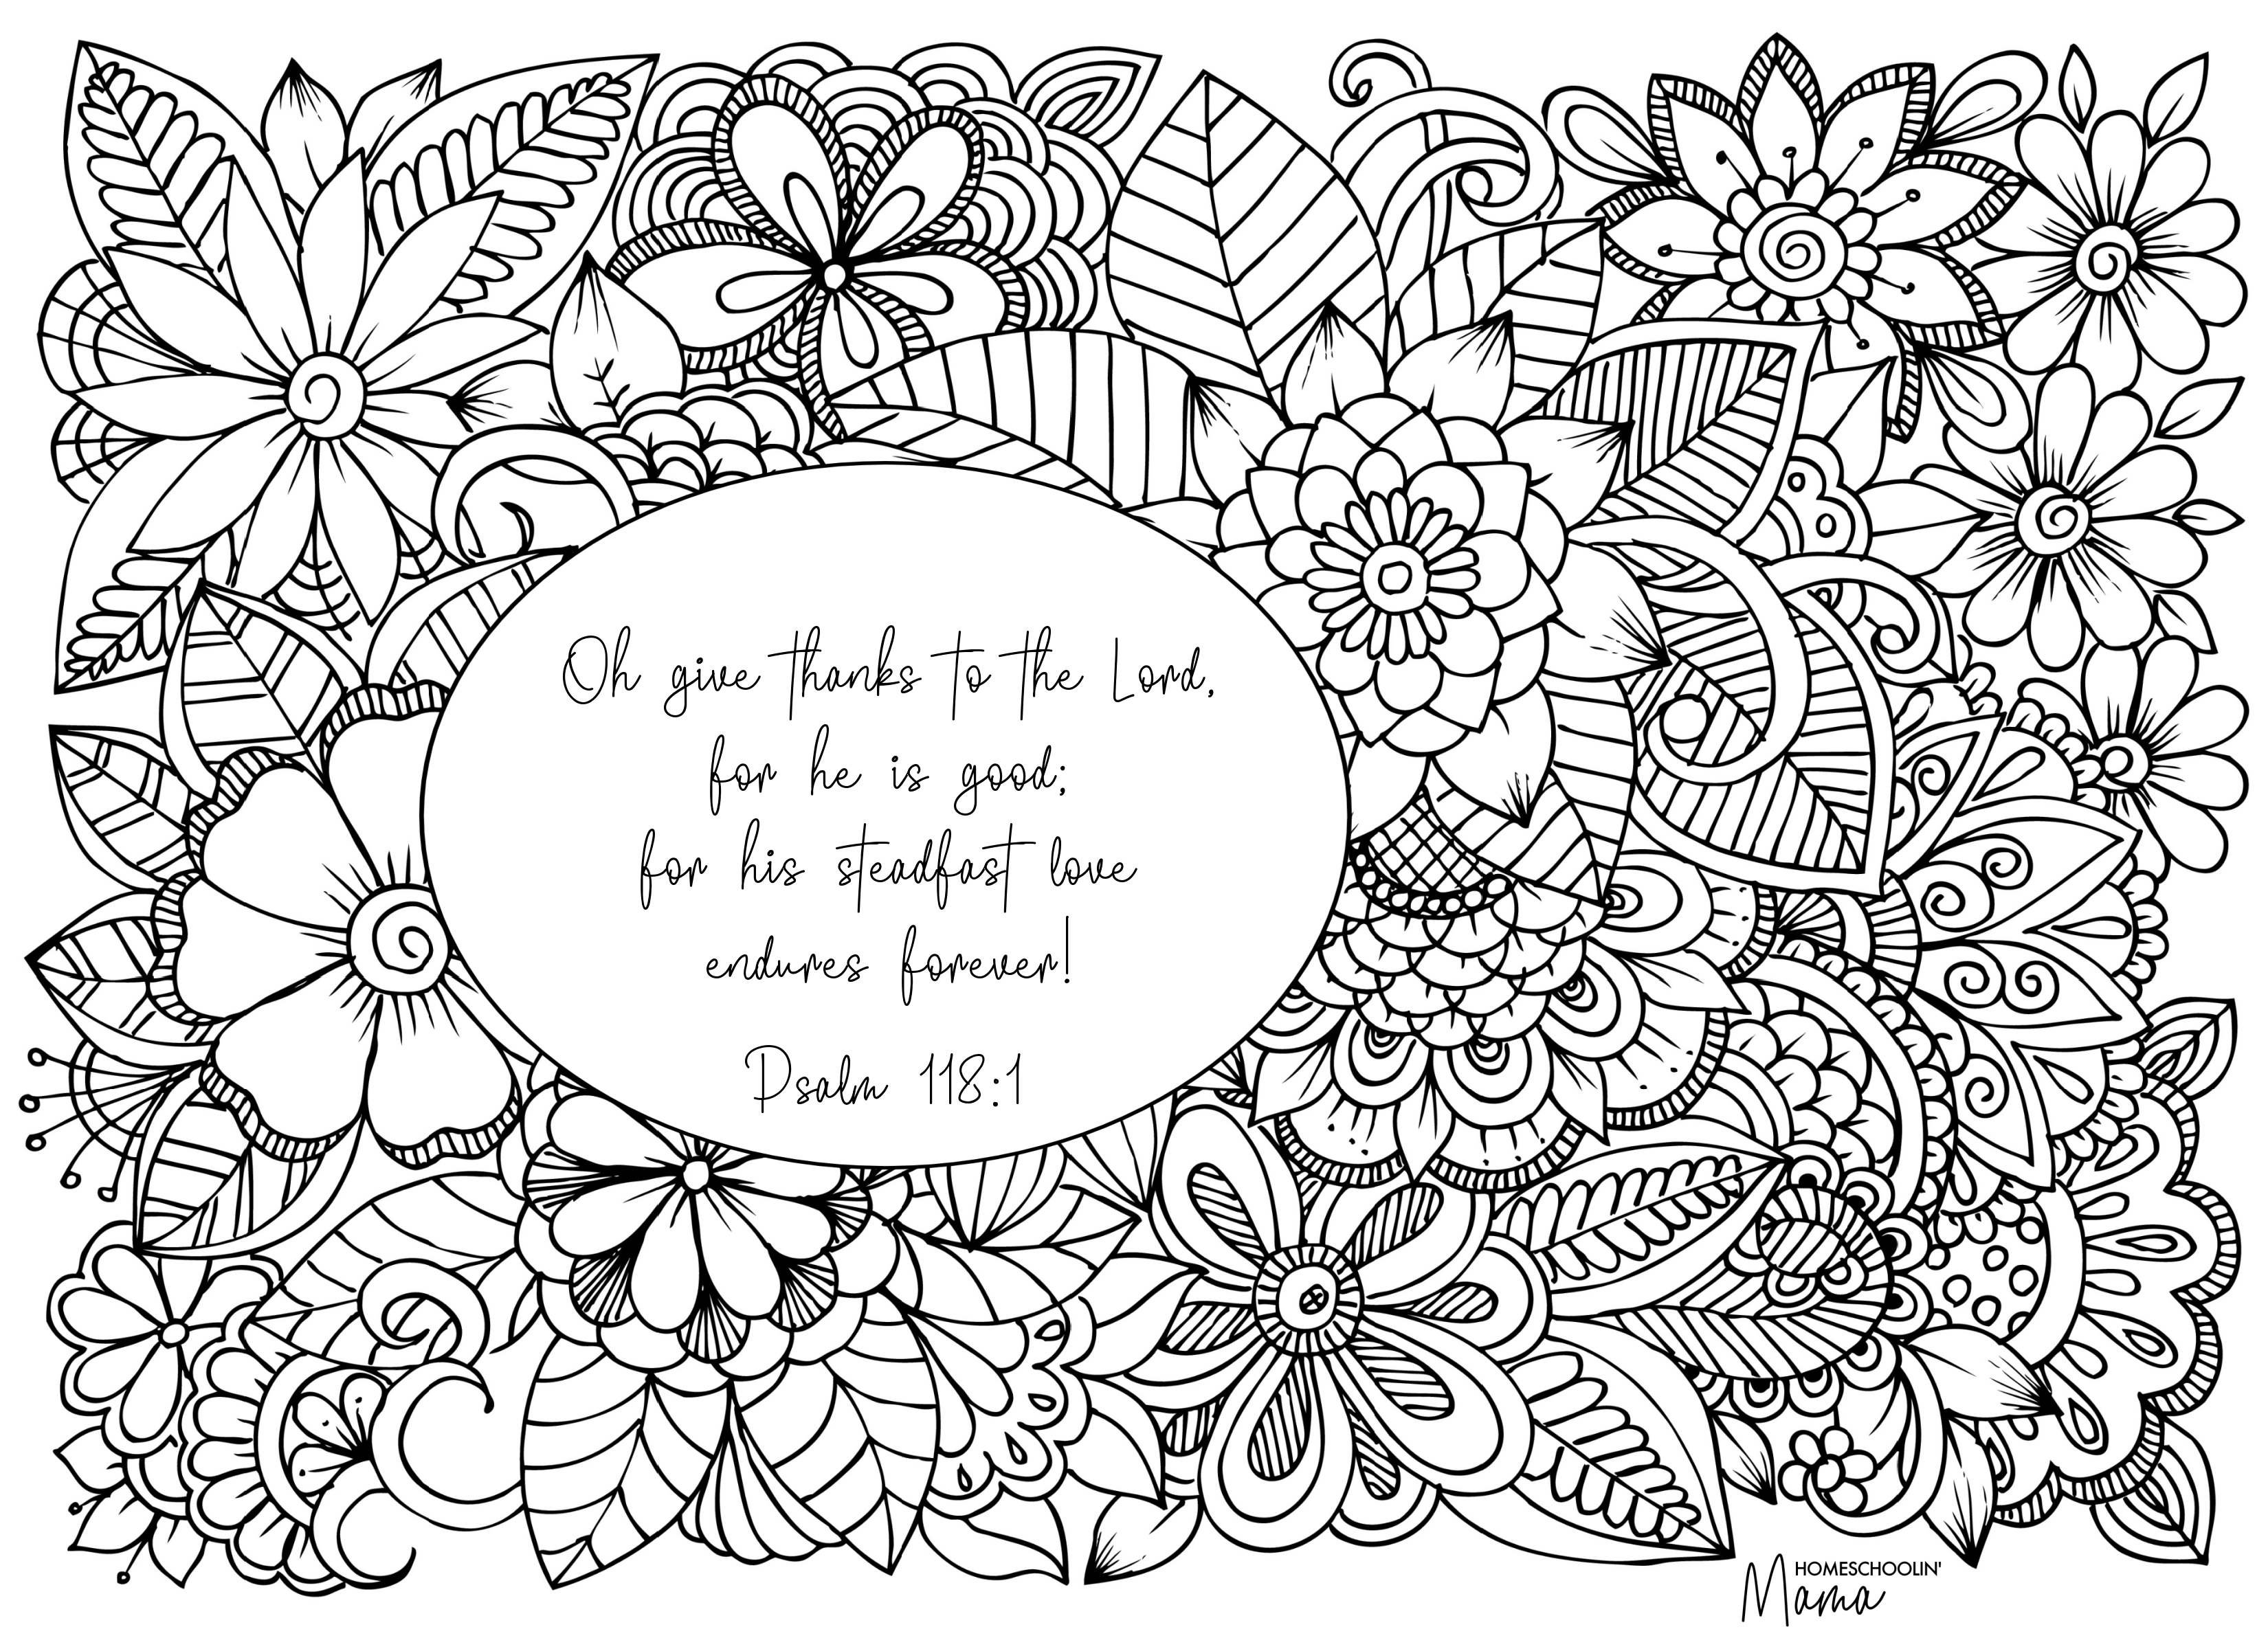 Thankfulness Coloring Page with Homeschoolin Mama